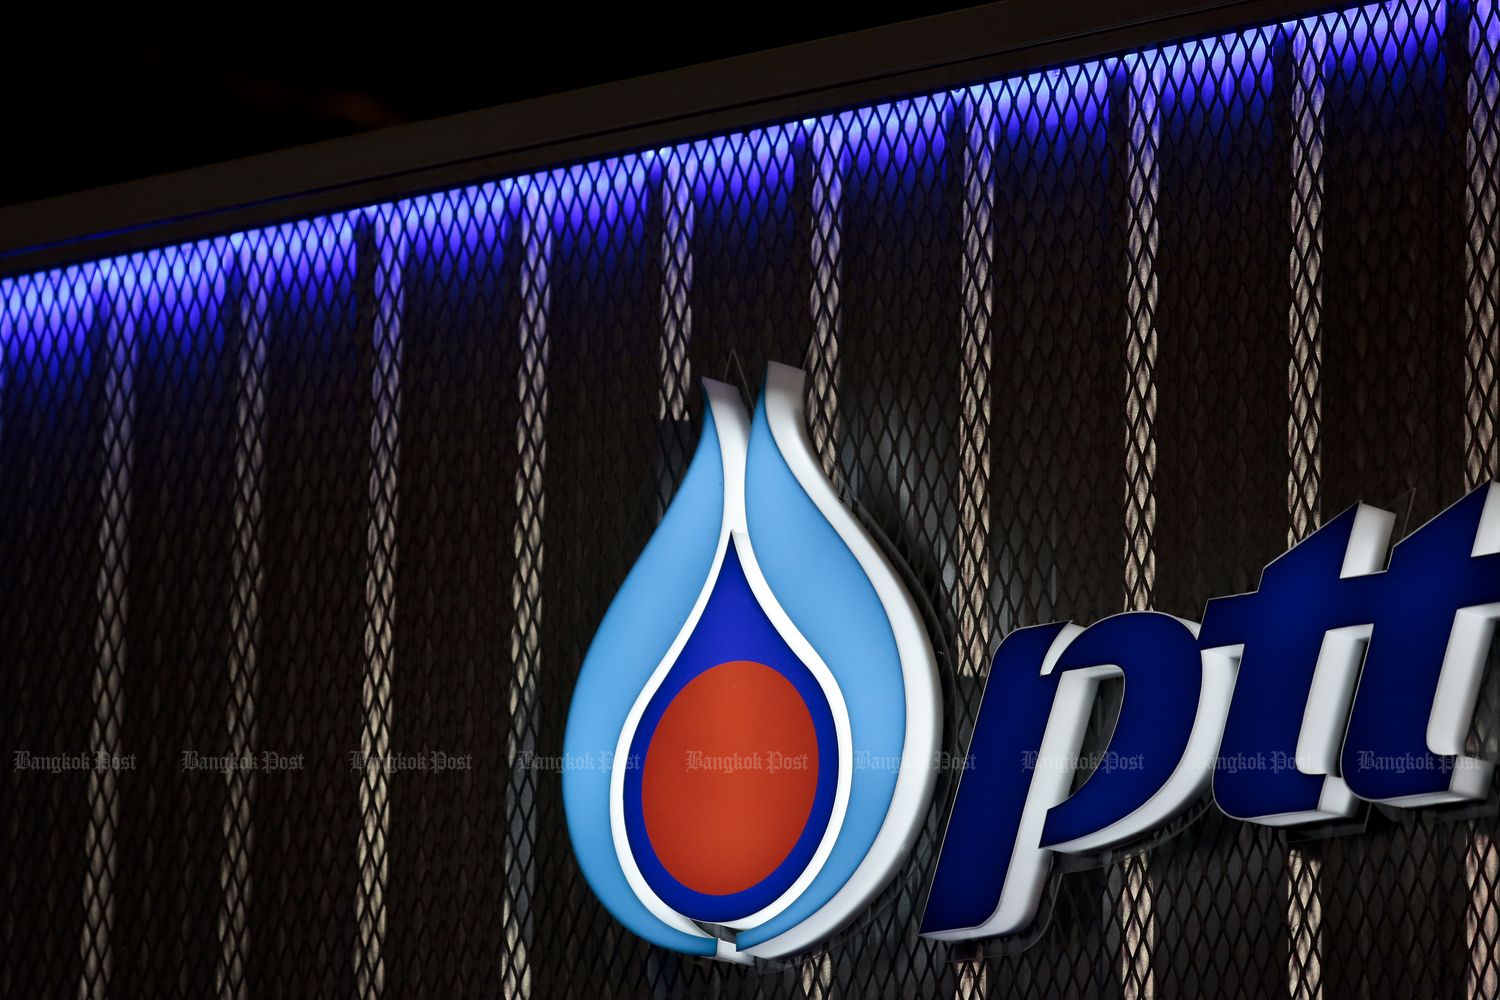 PTT executive tests positive, head office closed